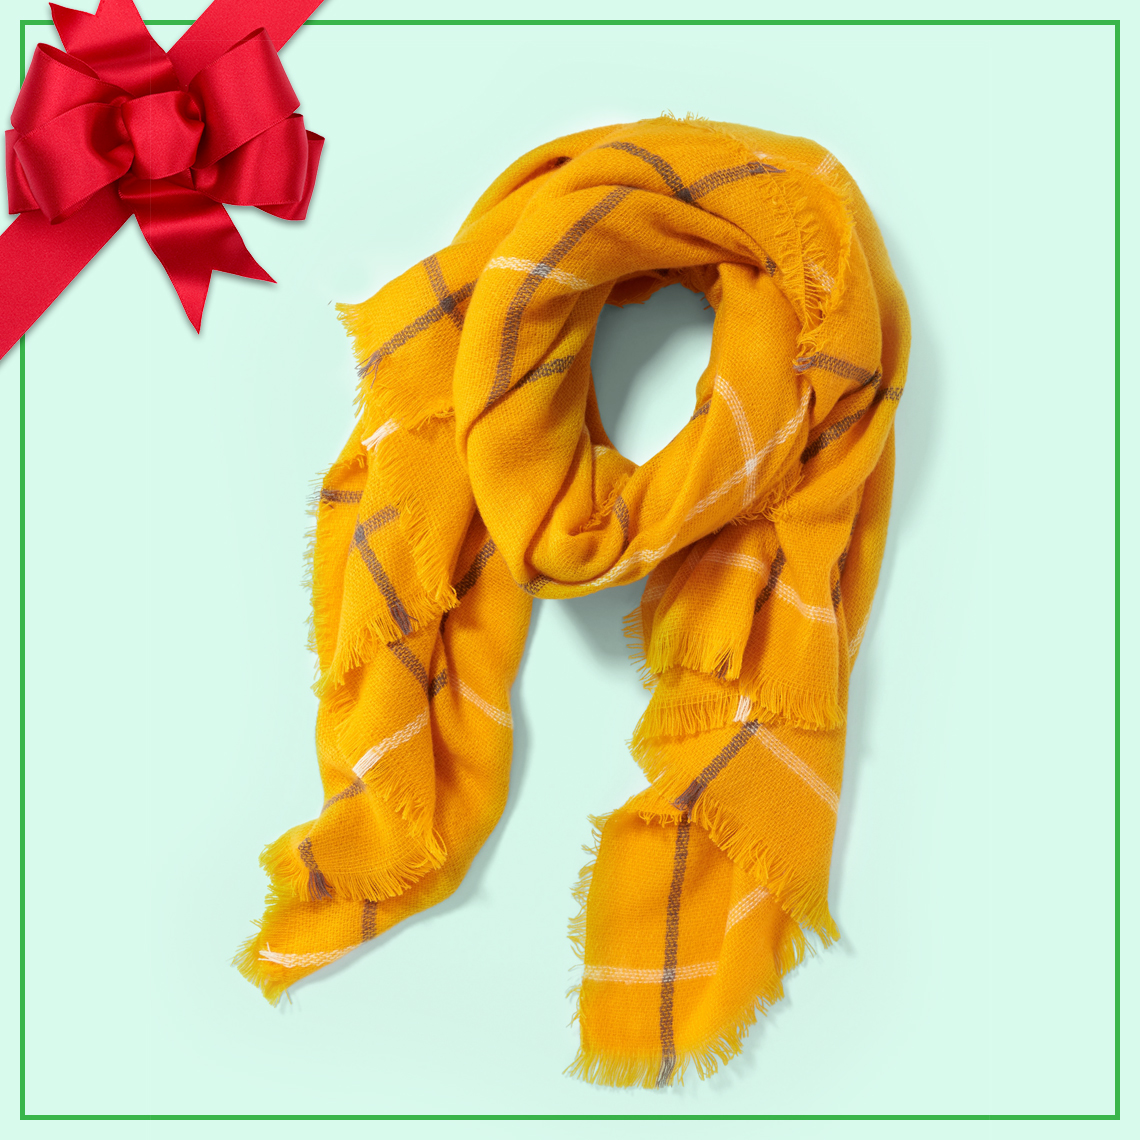 A gold scarf